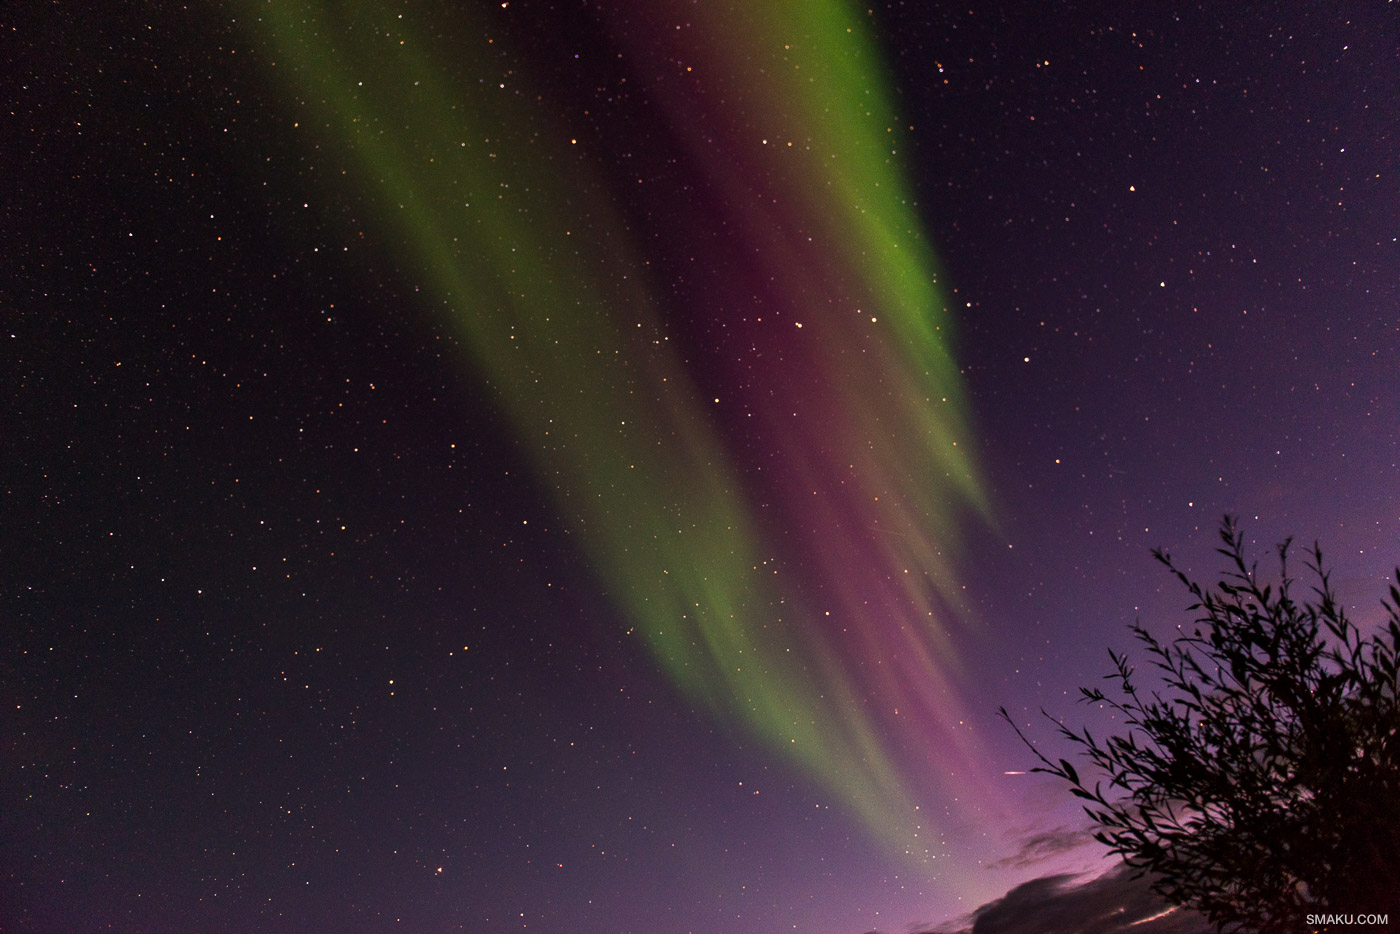 The sky has a deeper purple hue to it, with slightly different hues of the Aurora Borealis.